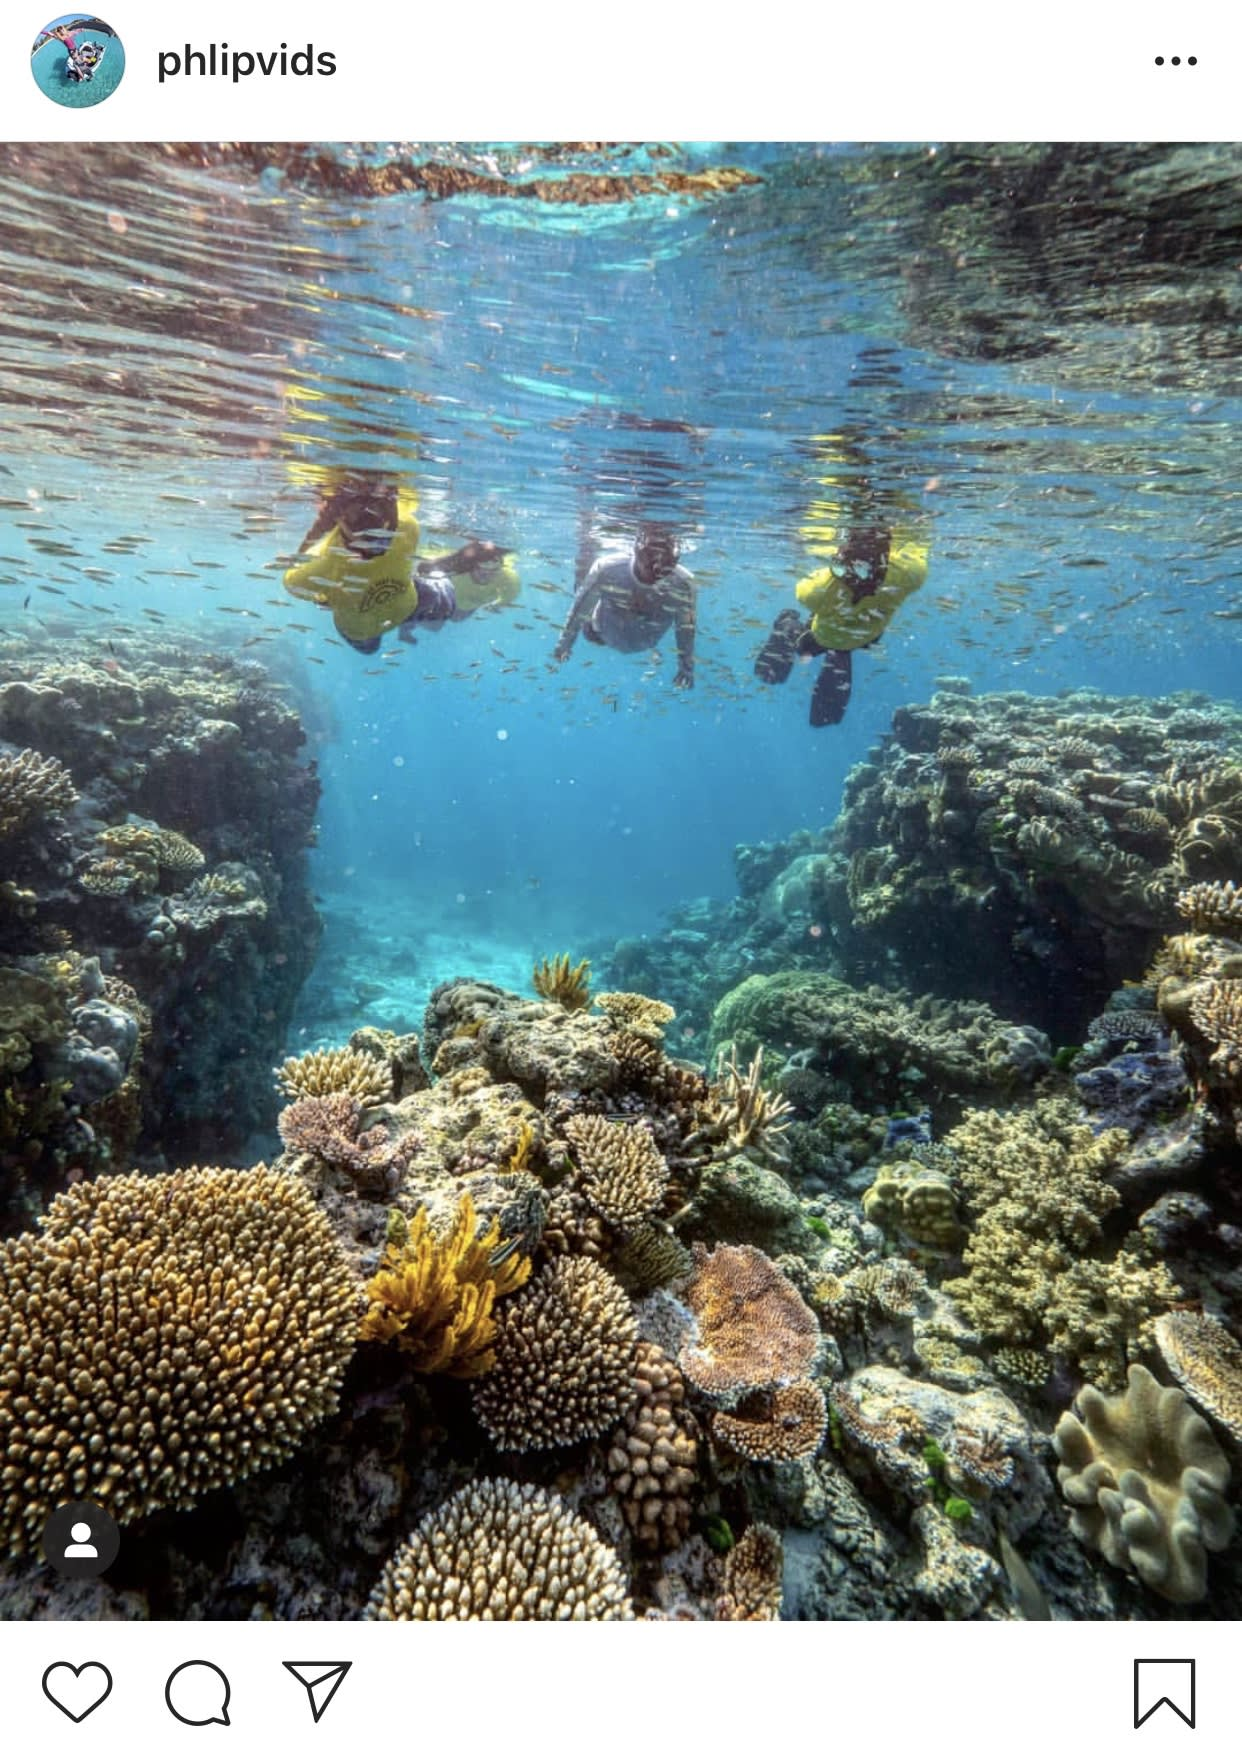 Snorkelling at the Great Barrier Reef in Cairns